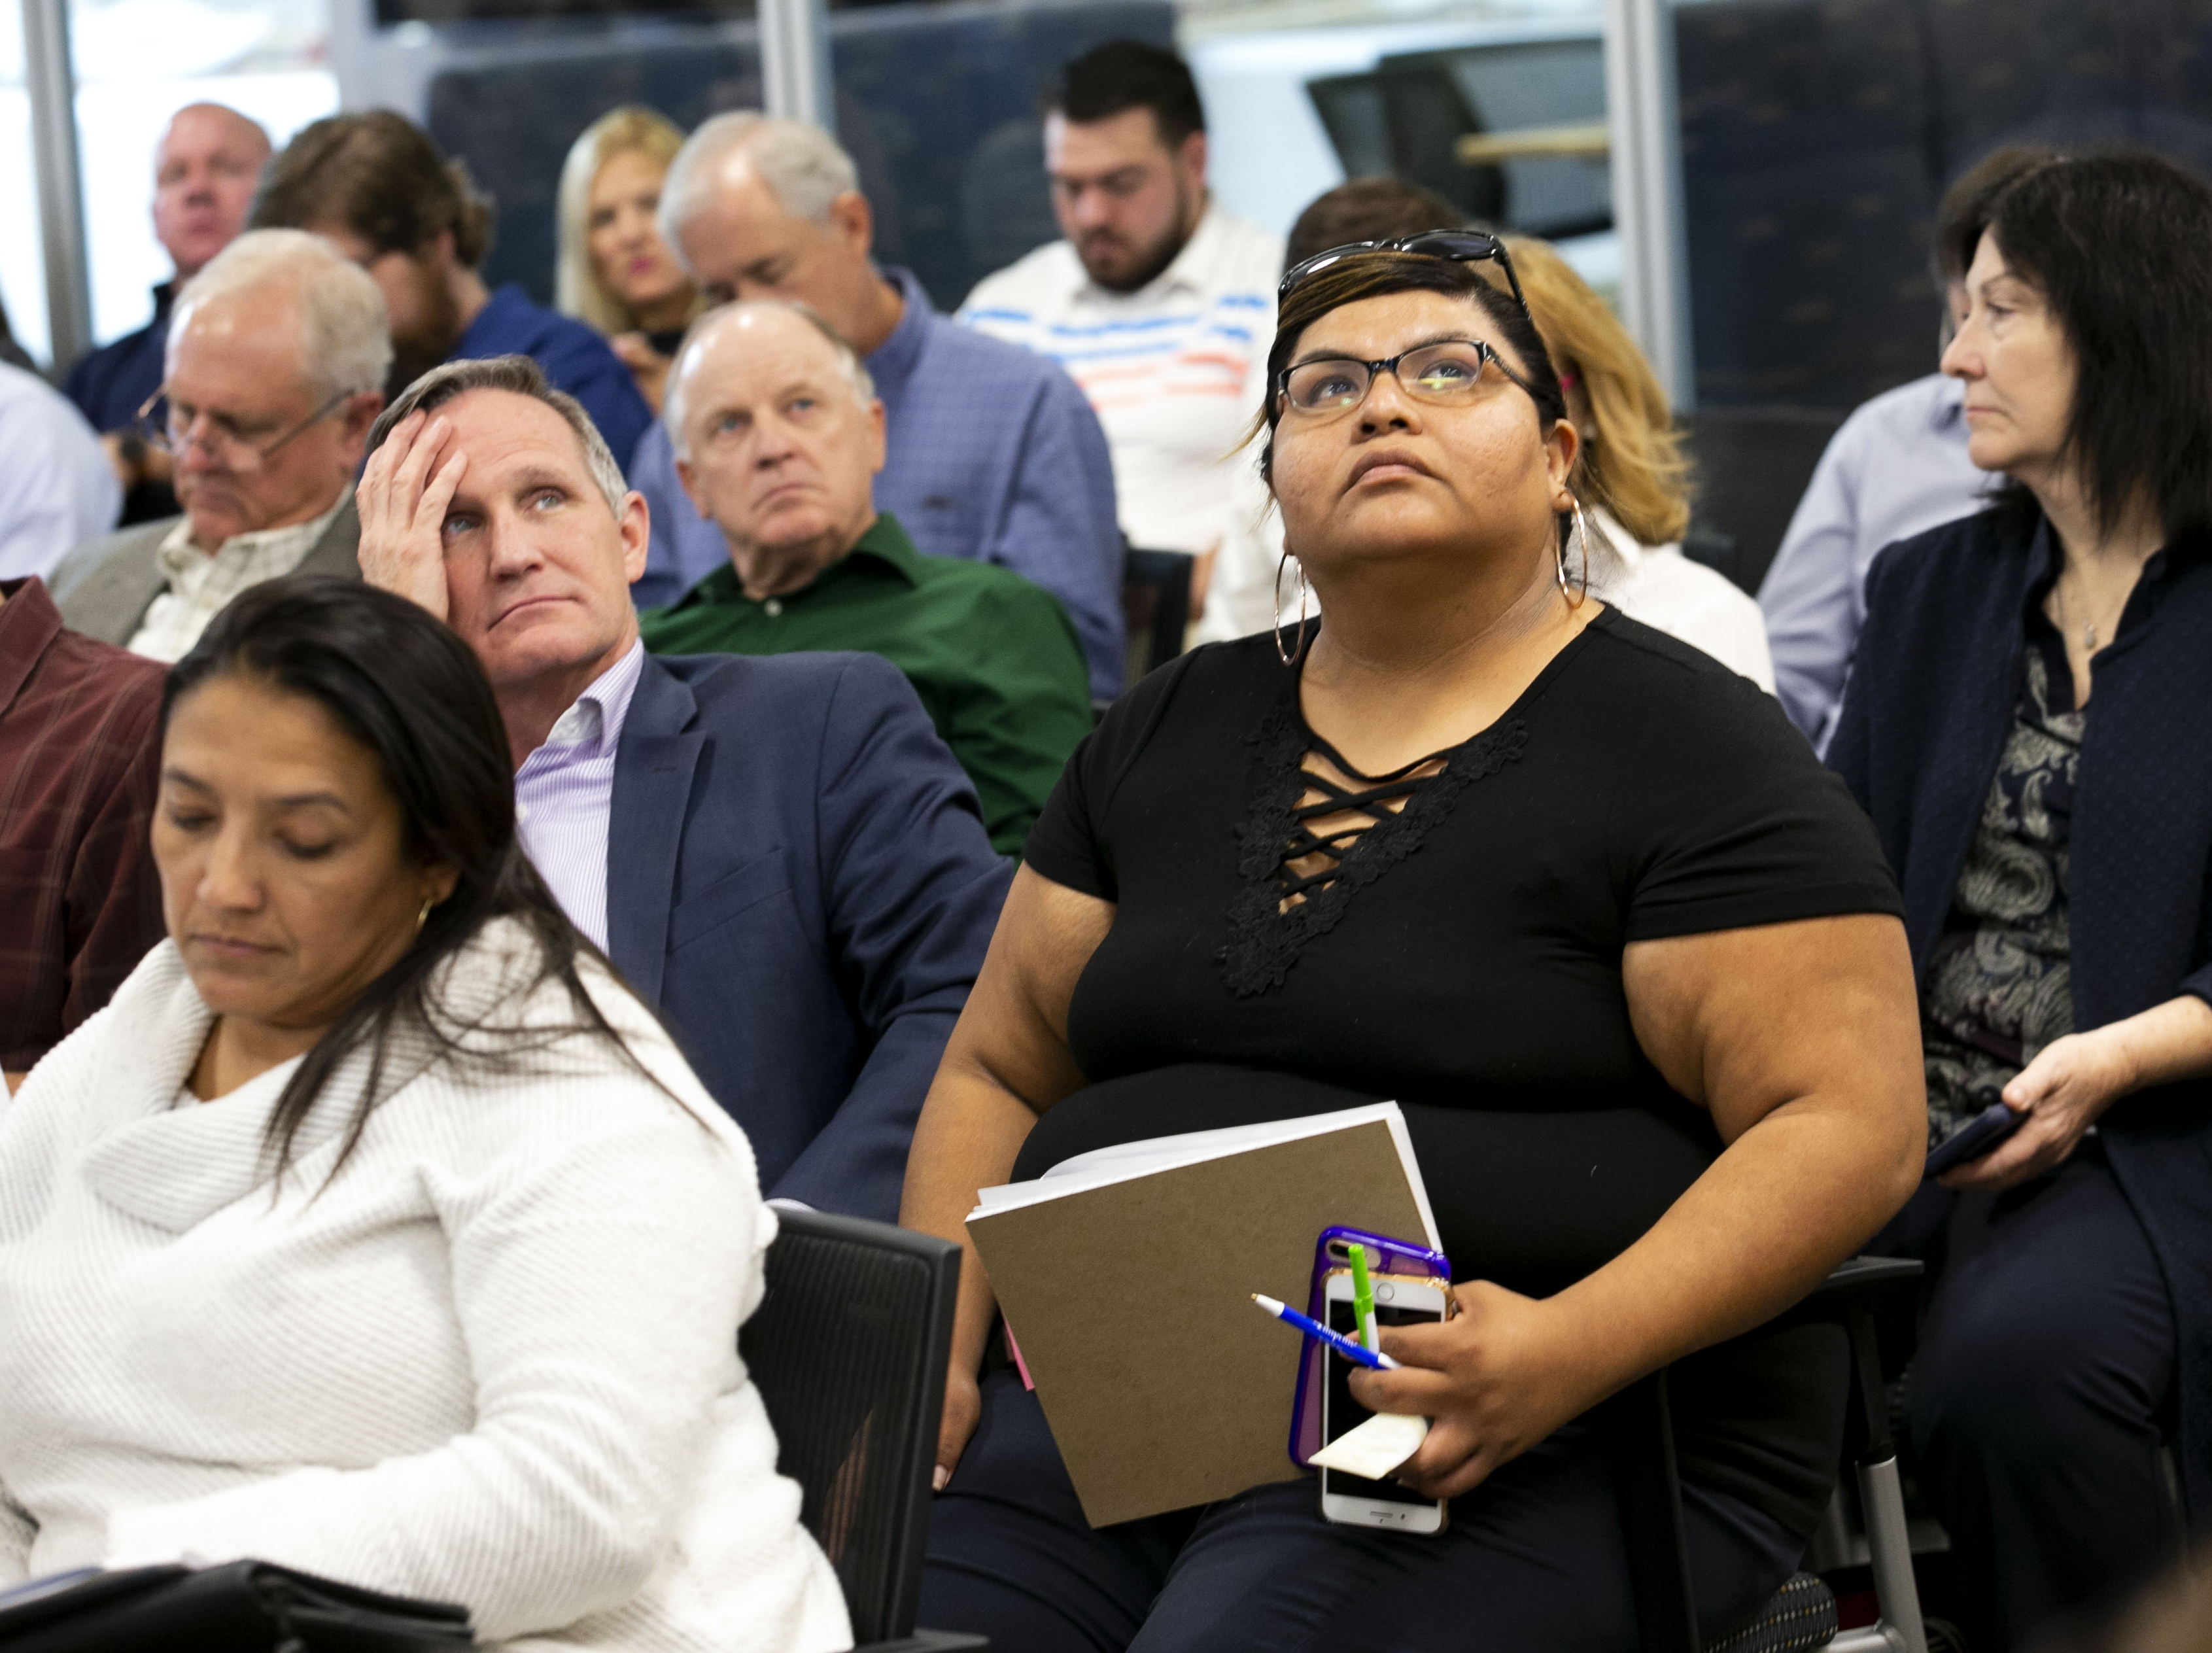 Mitzi Galvez (center right) of the San Xavier Allottees Association, listens from the audience during the Arizona Lower Basin Drought Contingency Plan Steering Committee meeting to work on a drought contingency plan for the Colorado River at Central Arizona Project headquarters in Phoenix on November 29, 2018.